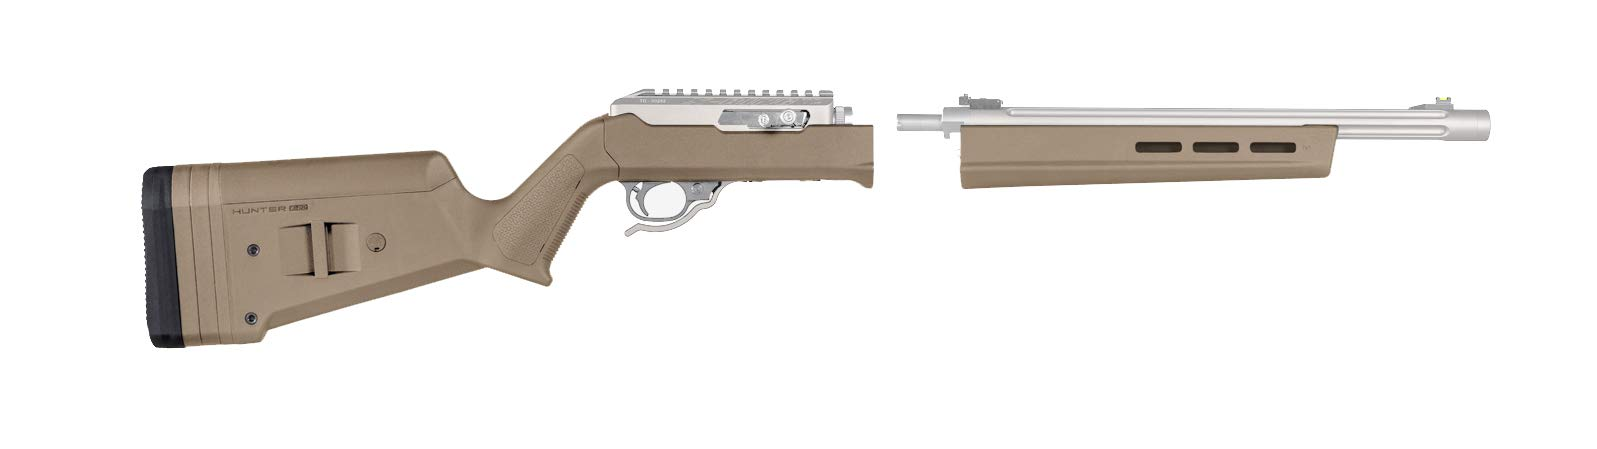 Magpul Hunter X-22 Takedown Stock for Ruger 10/22 Takedown, Flat Dark Earth by Magpul